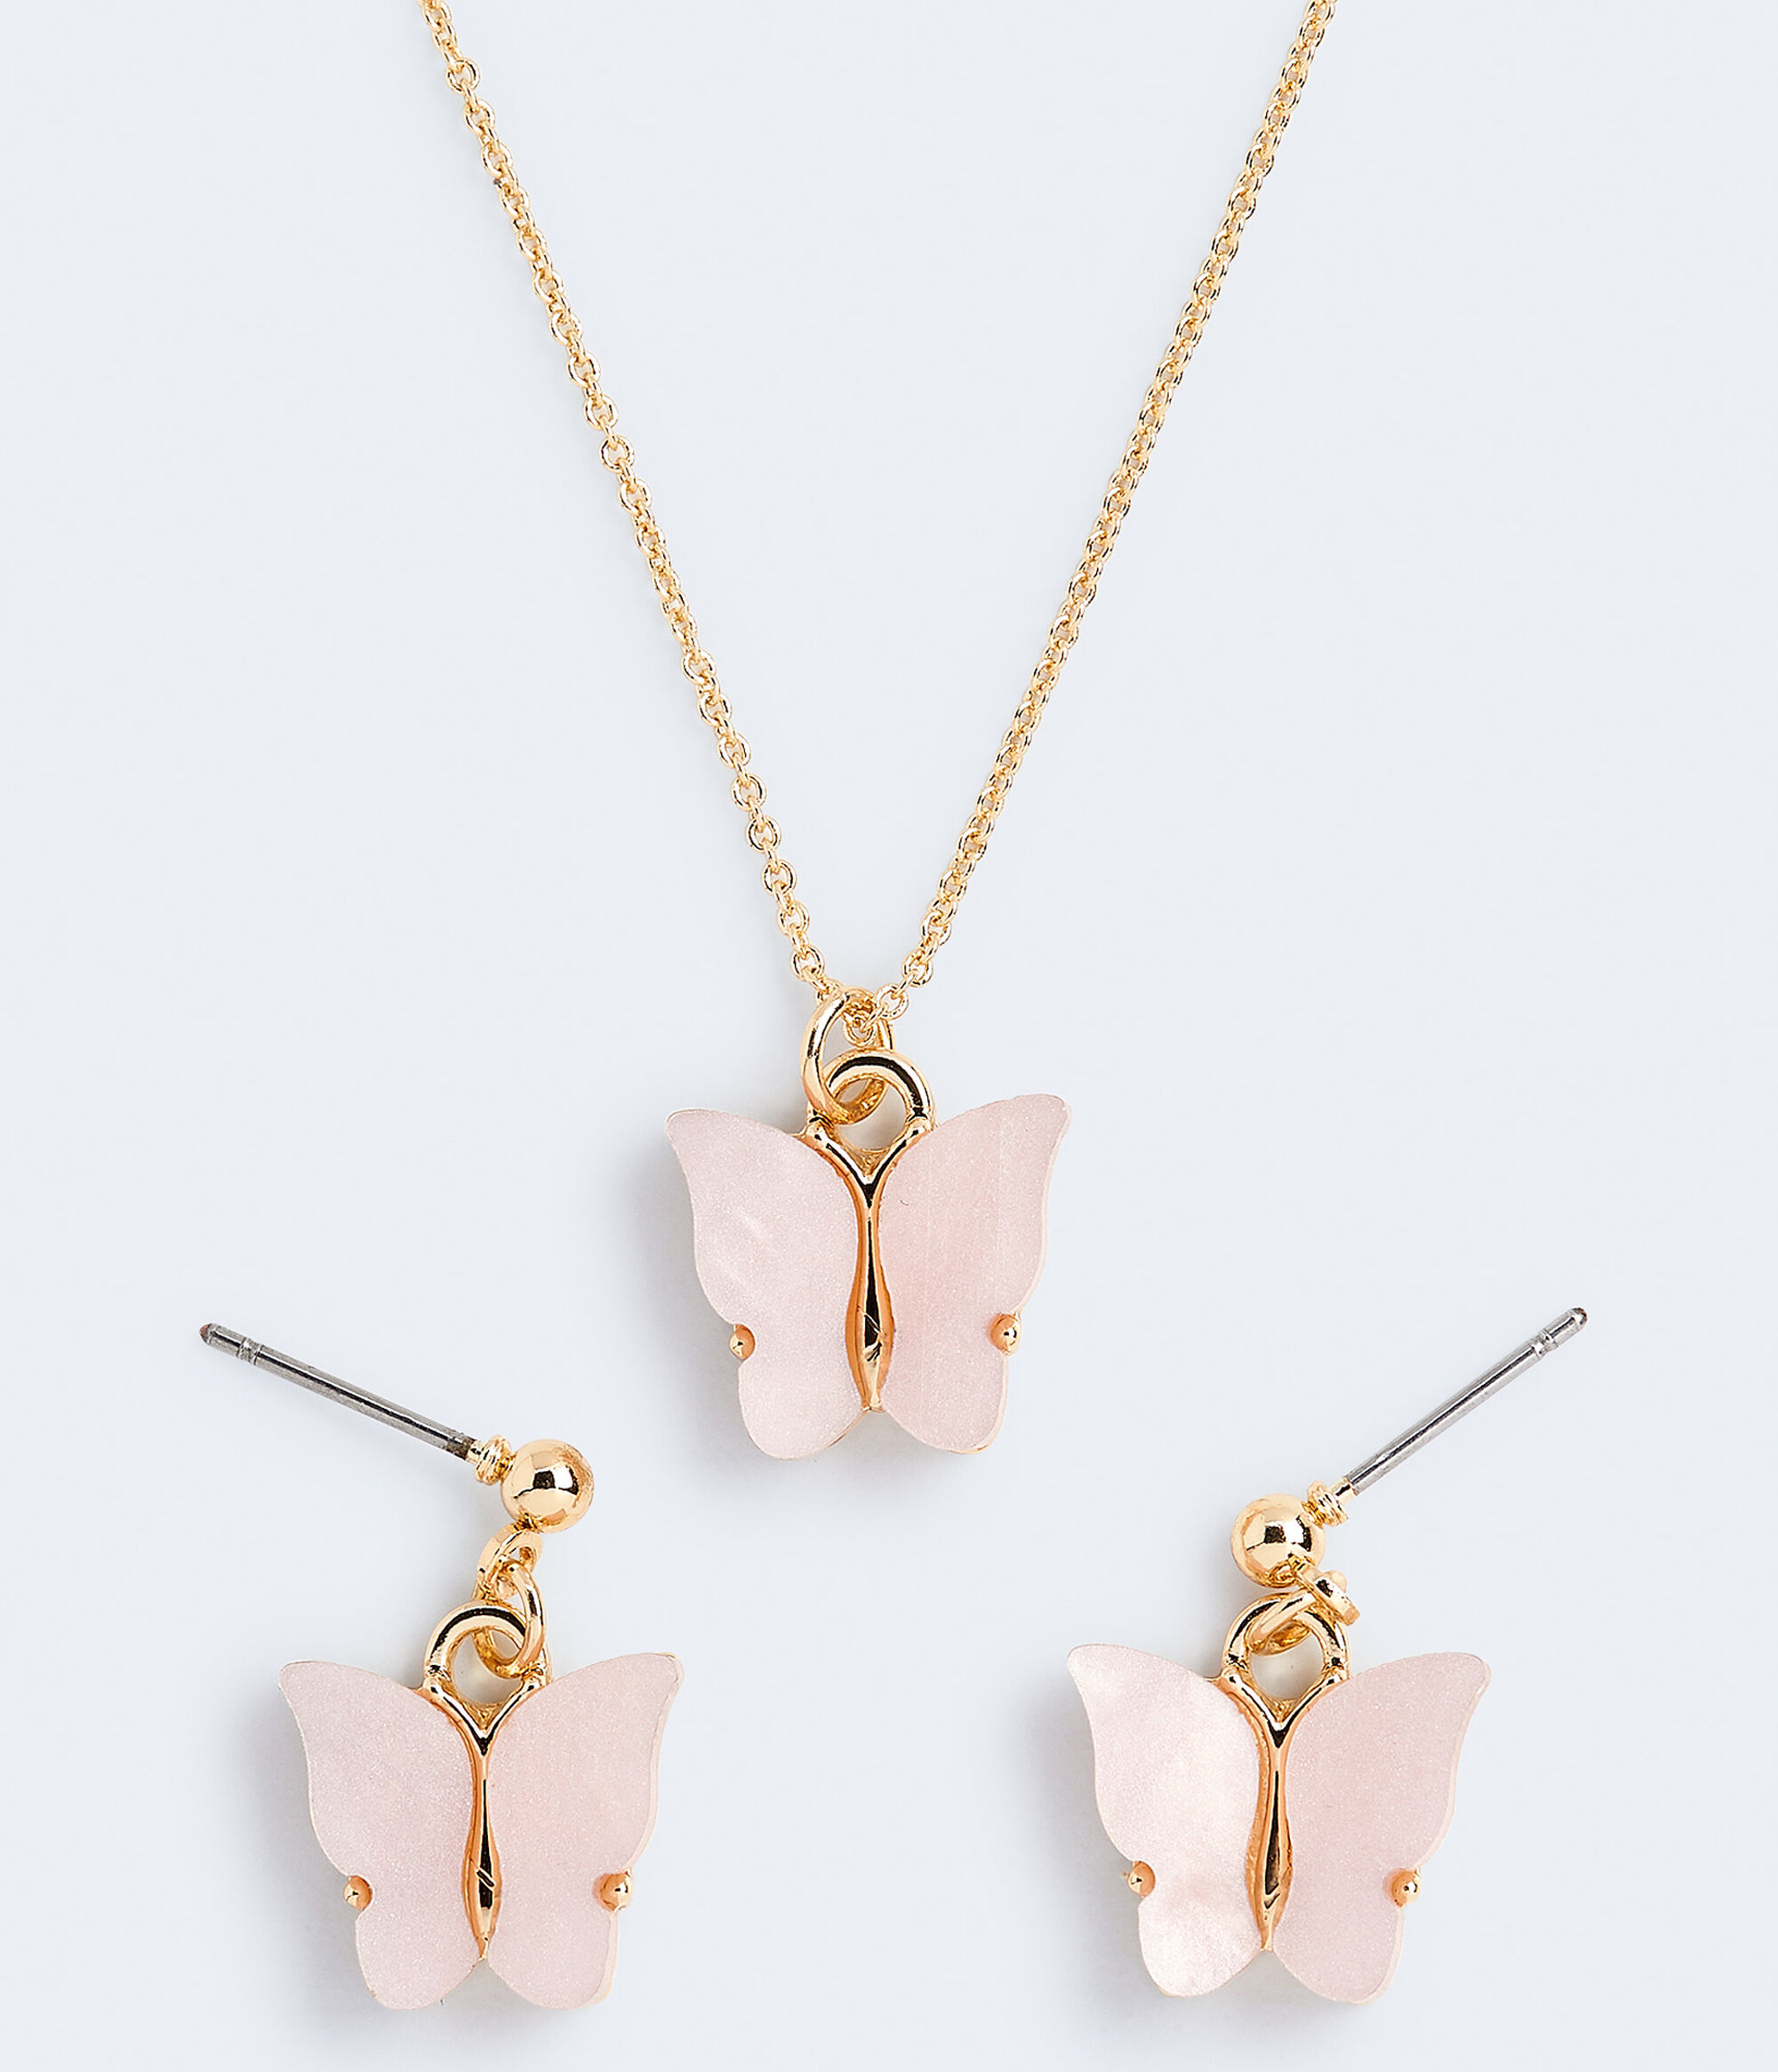 Butterfly necklace and earring set